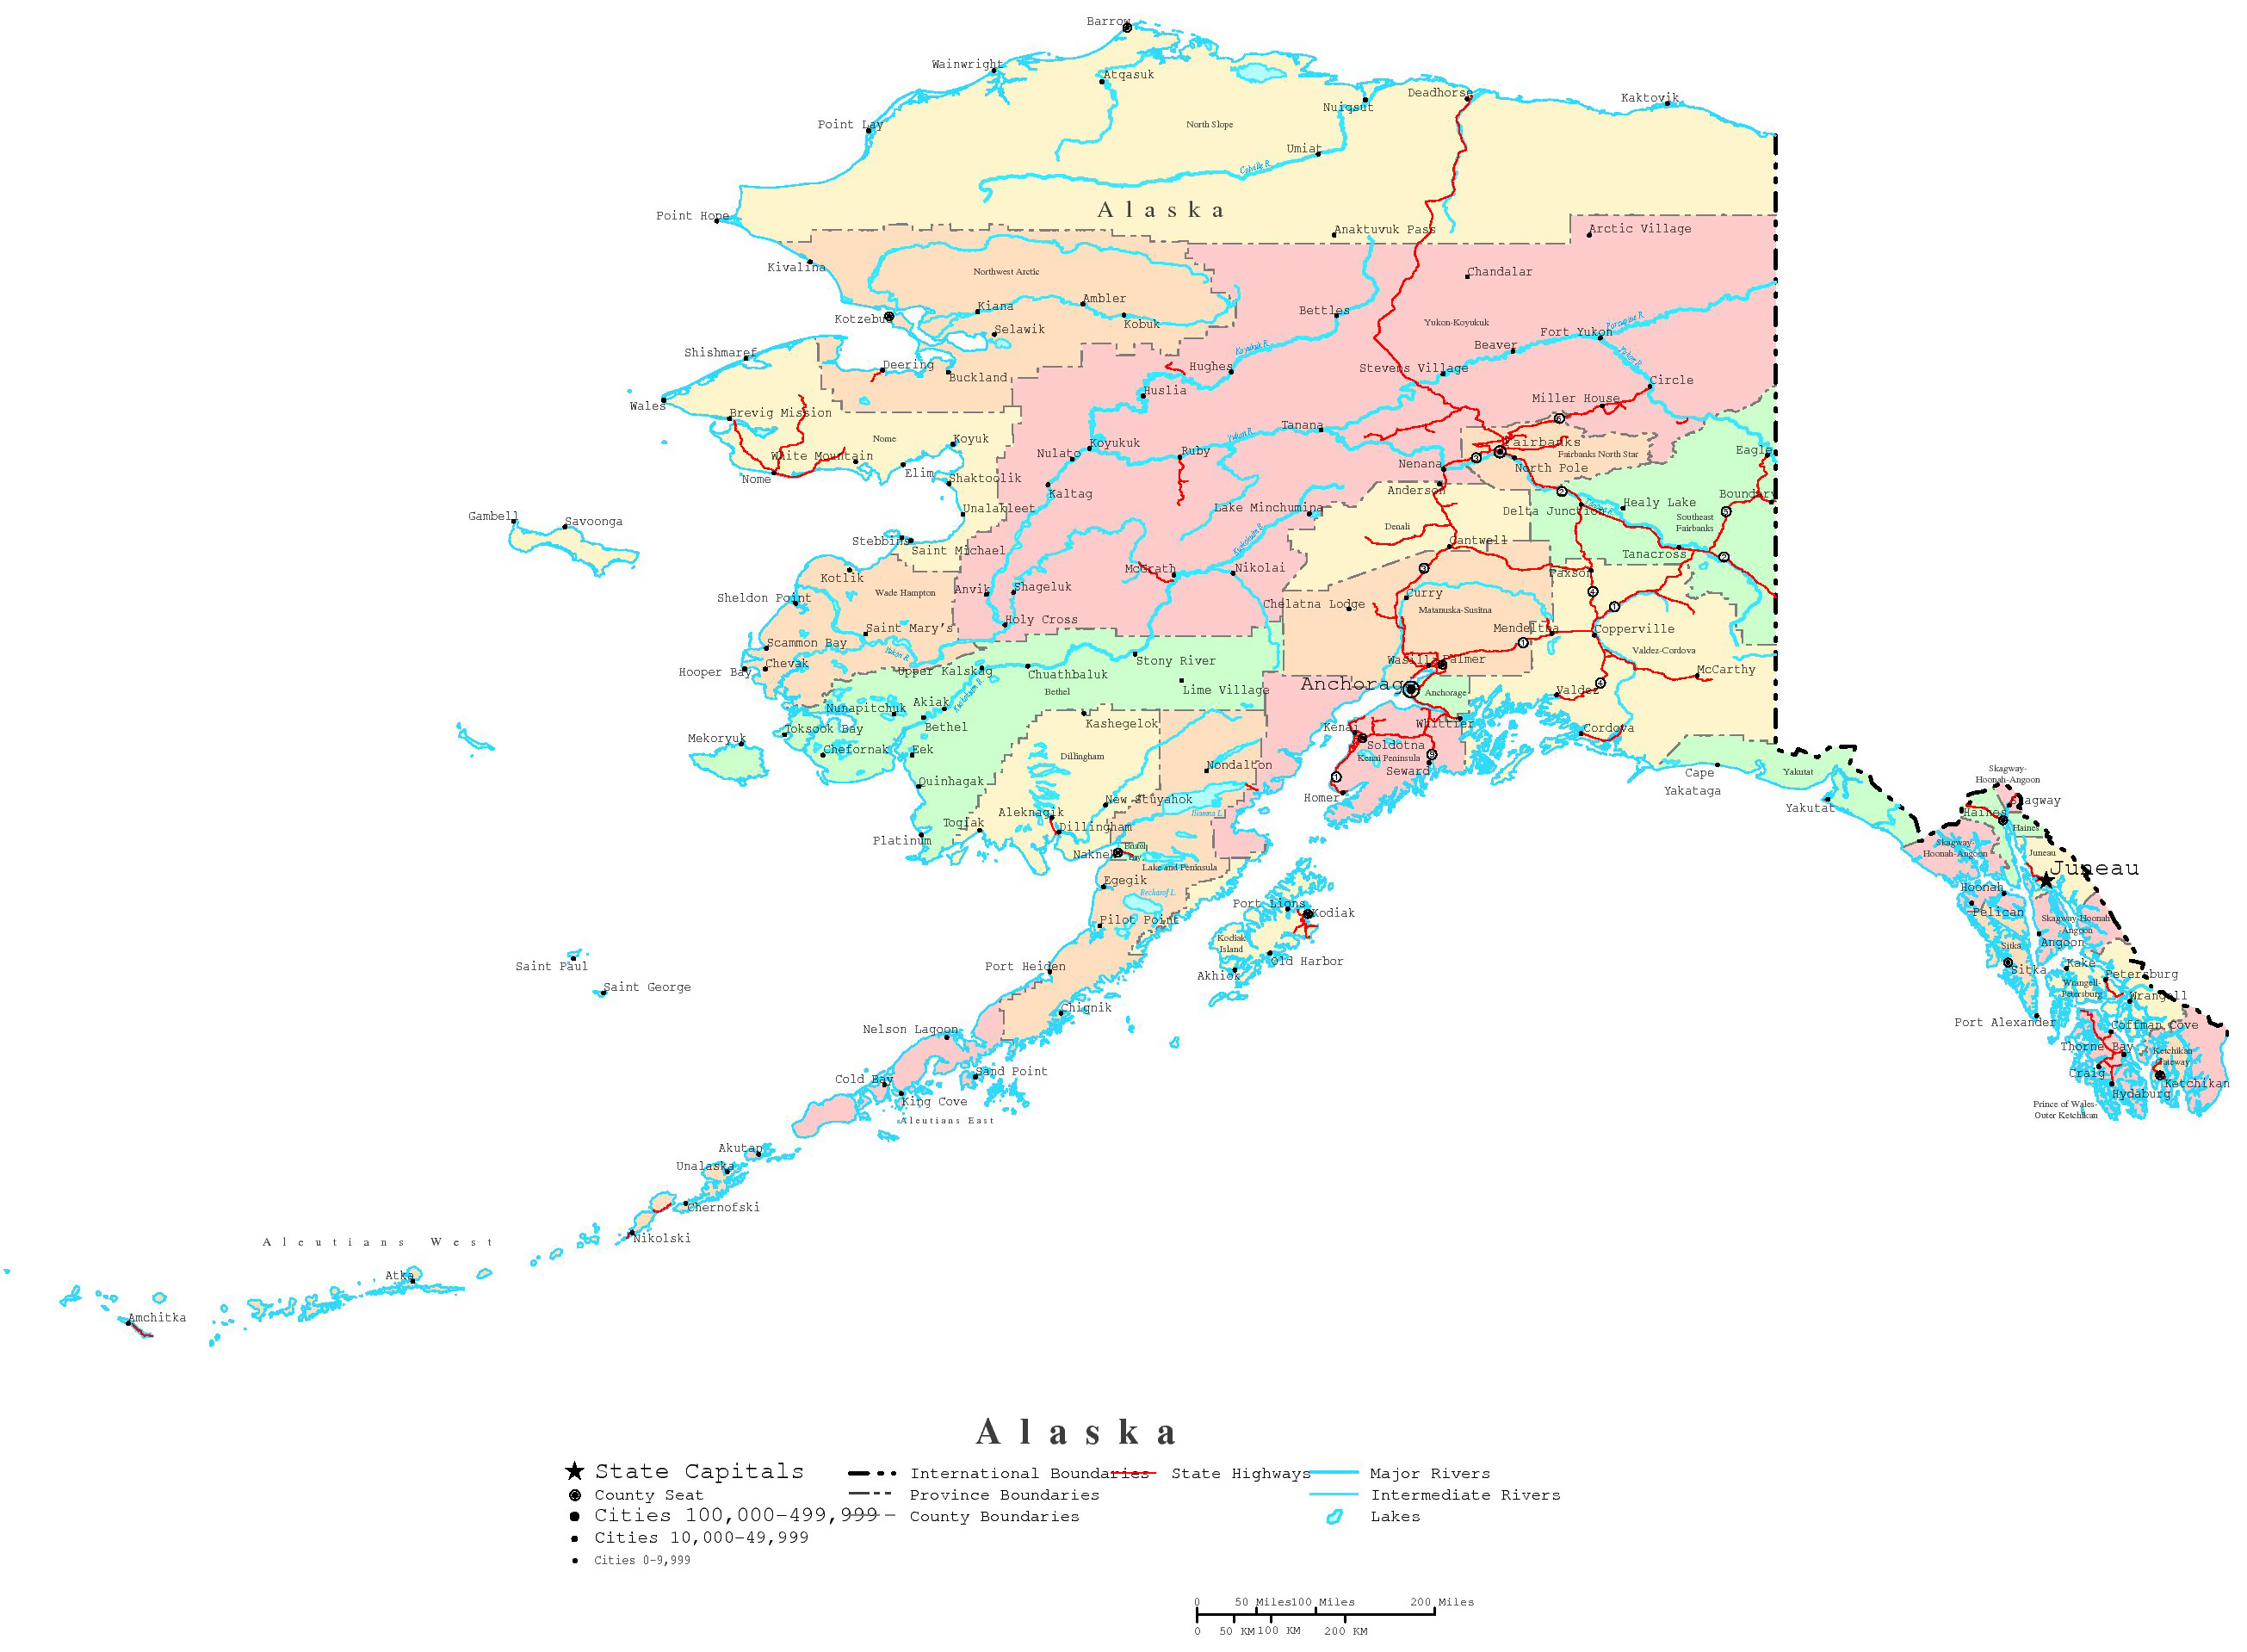 Large Administrative Map Of Alaska State With Roads And Cities